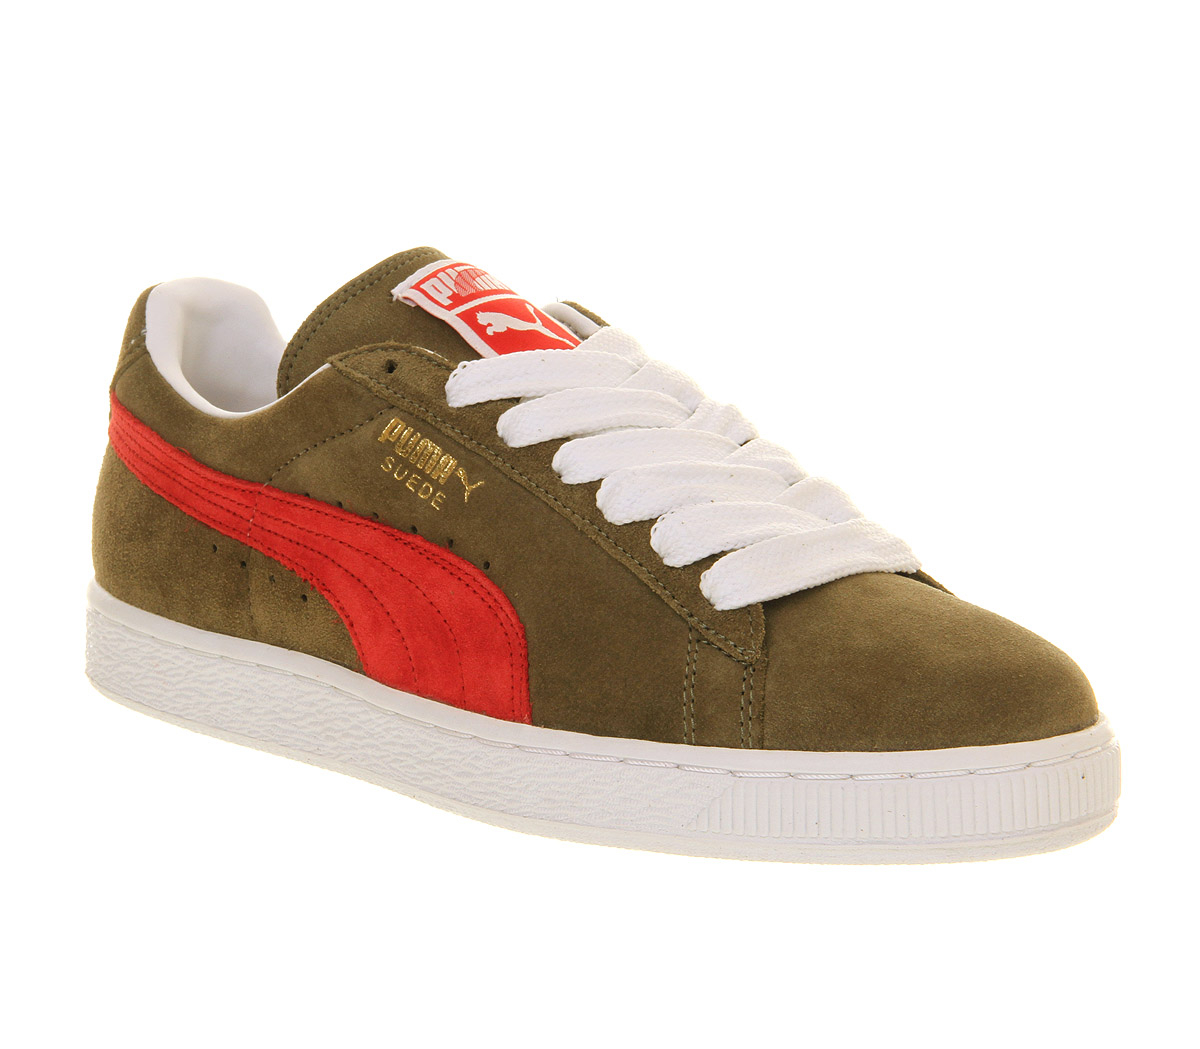 784508c1446 PUMA Green Suede Classic Burnt Olive Ribbon Red Smu Exclusive for men